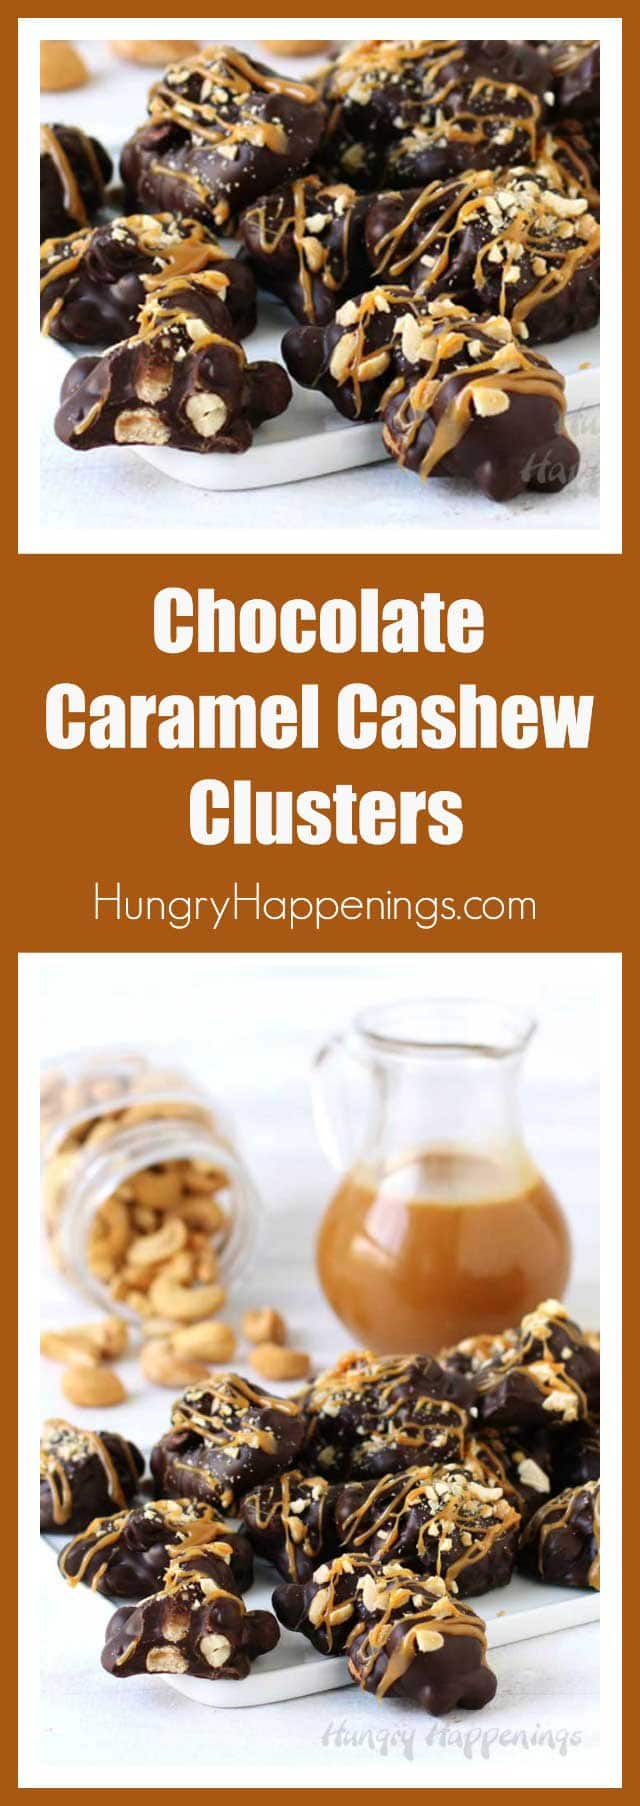 Making Chocolate Caramel Cashew Clusters at home is super easy and ...